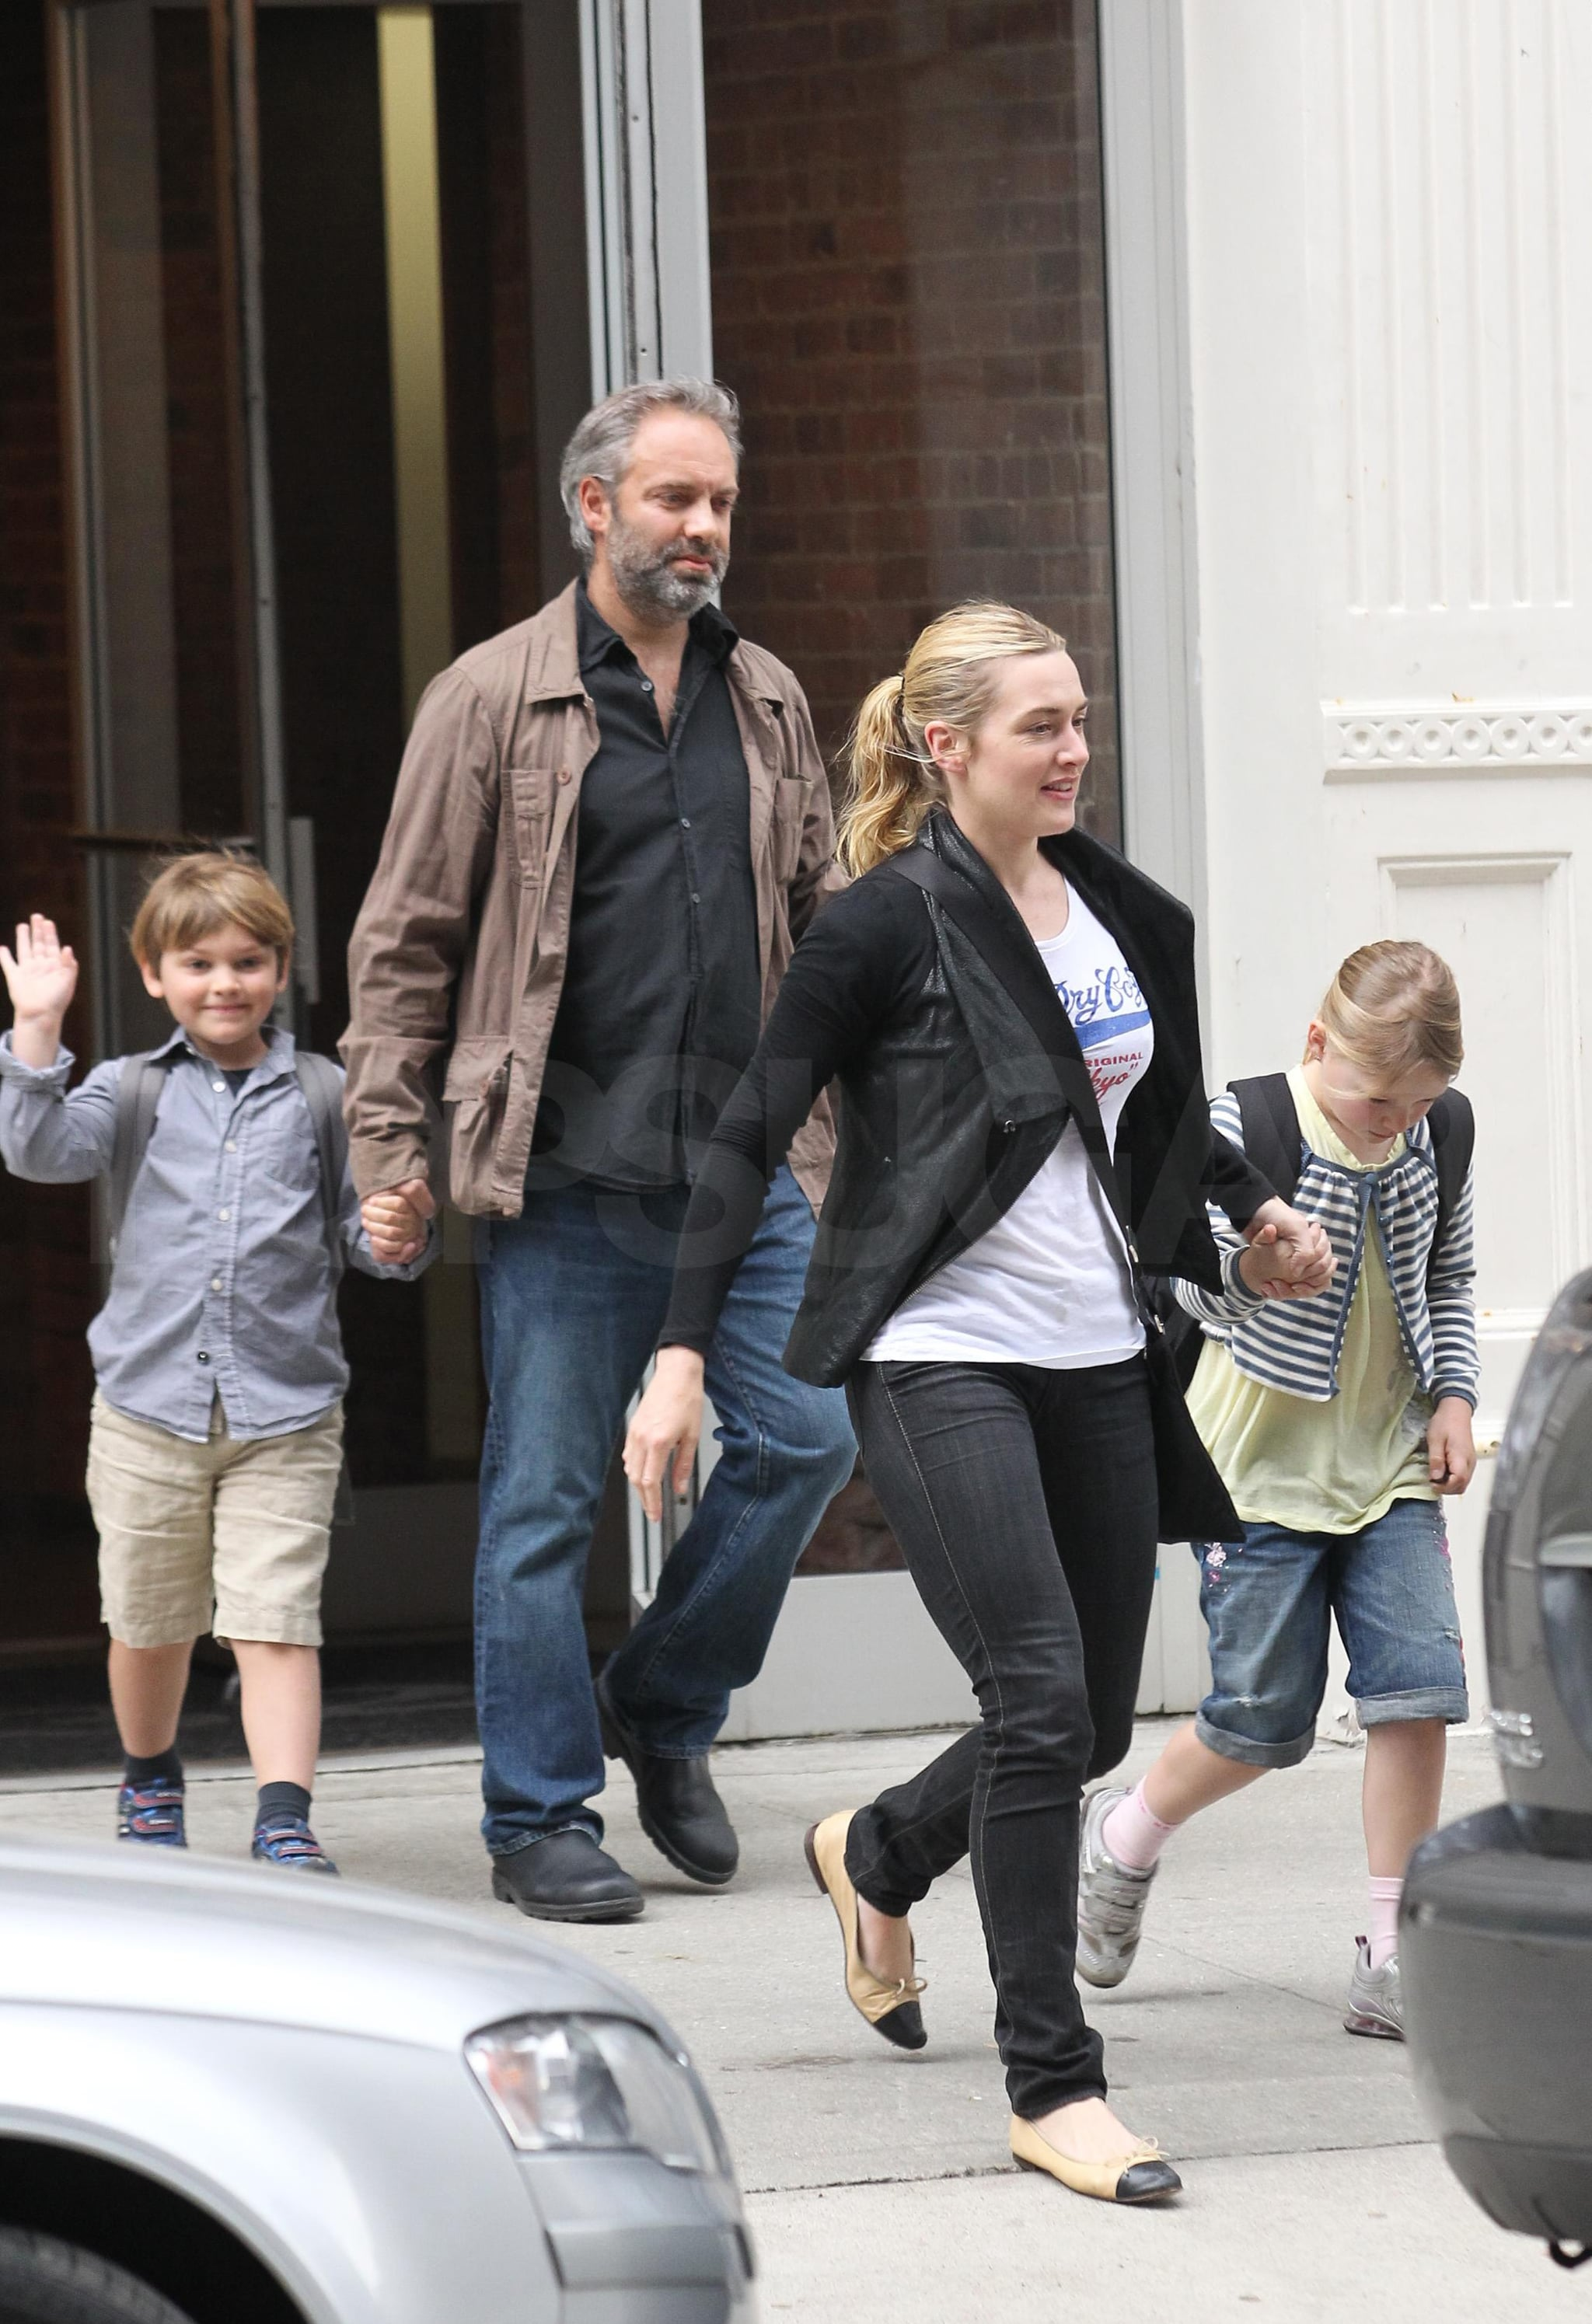 Big Joe Auto >> Photos of Kate Winslet, Sam Mendes, Joe Mendes, and Mia Threapleton Together in NYC | POPSUGAR ...